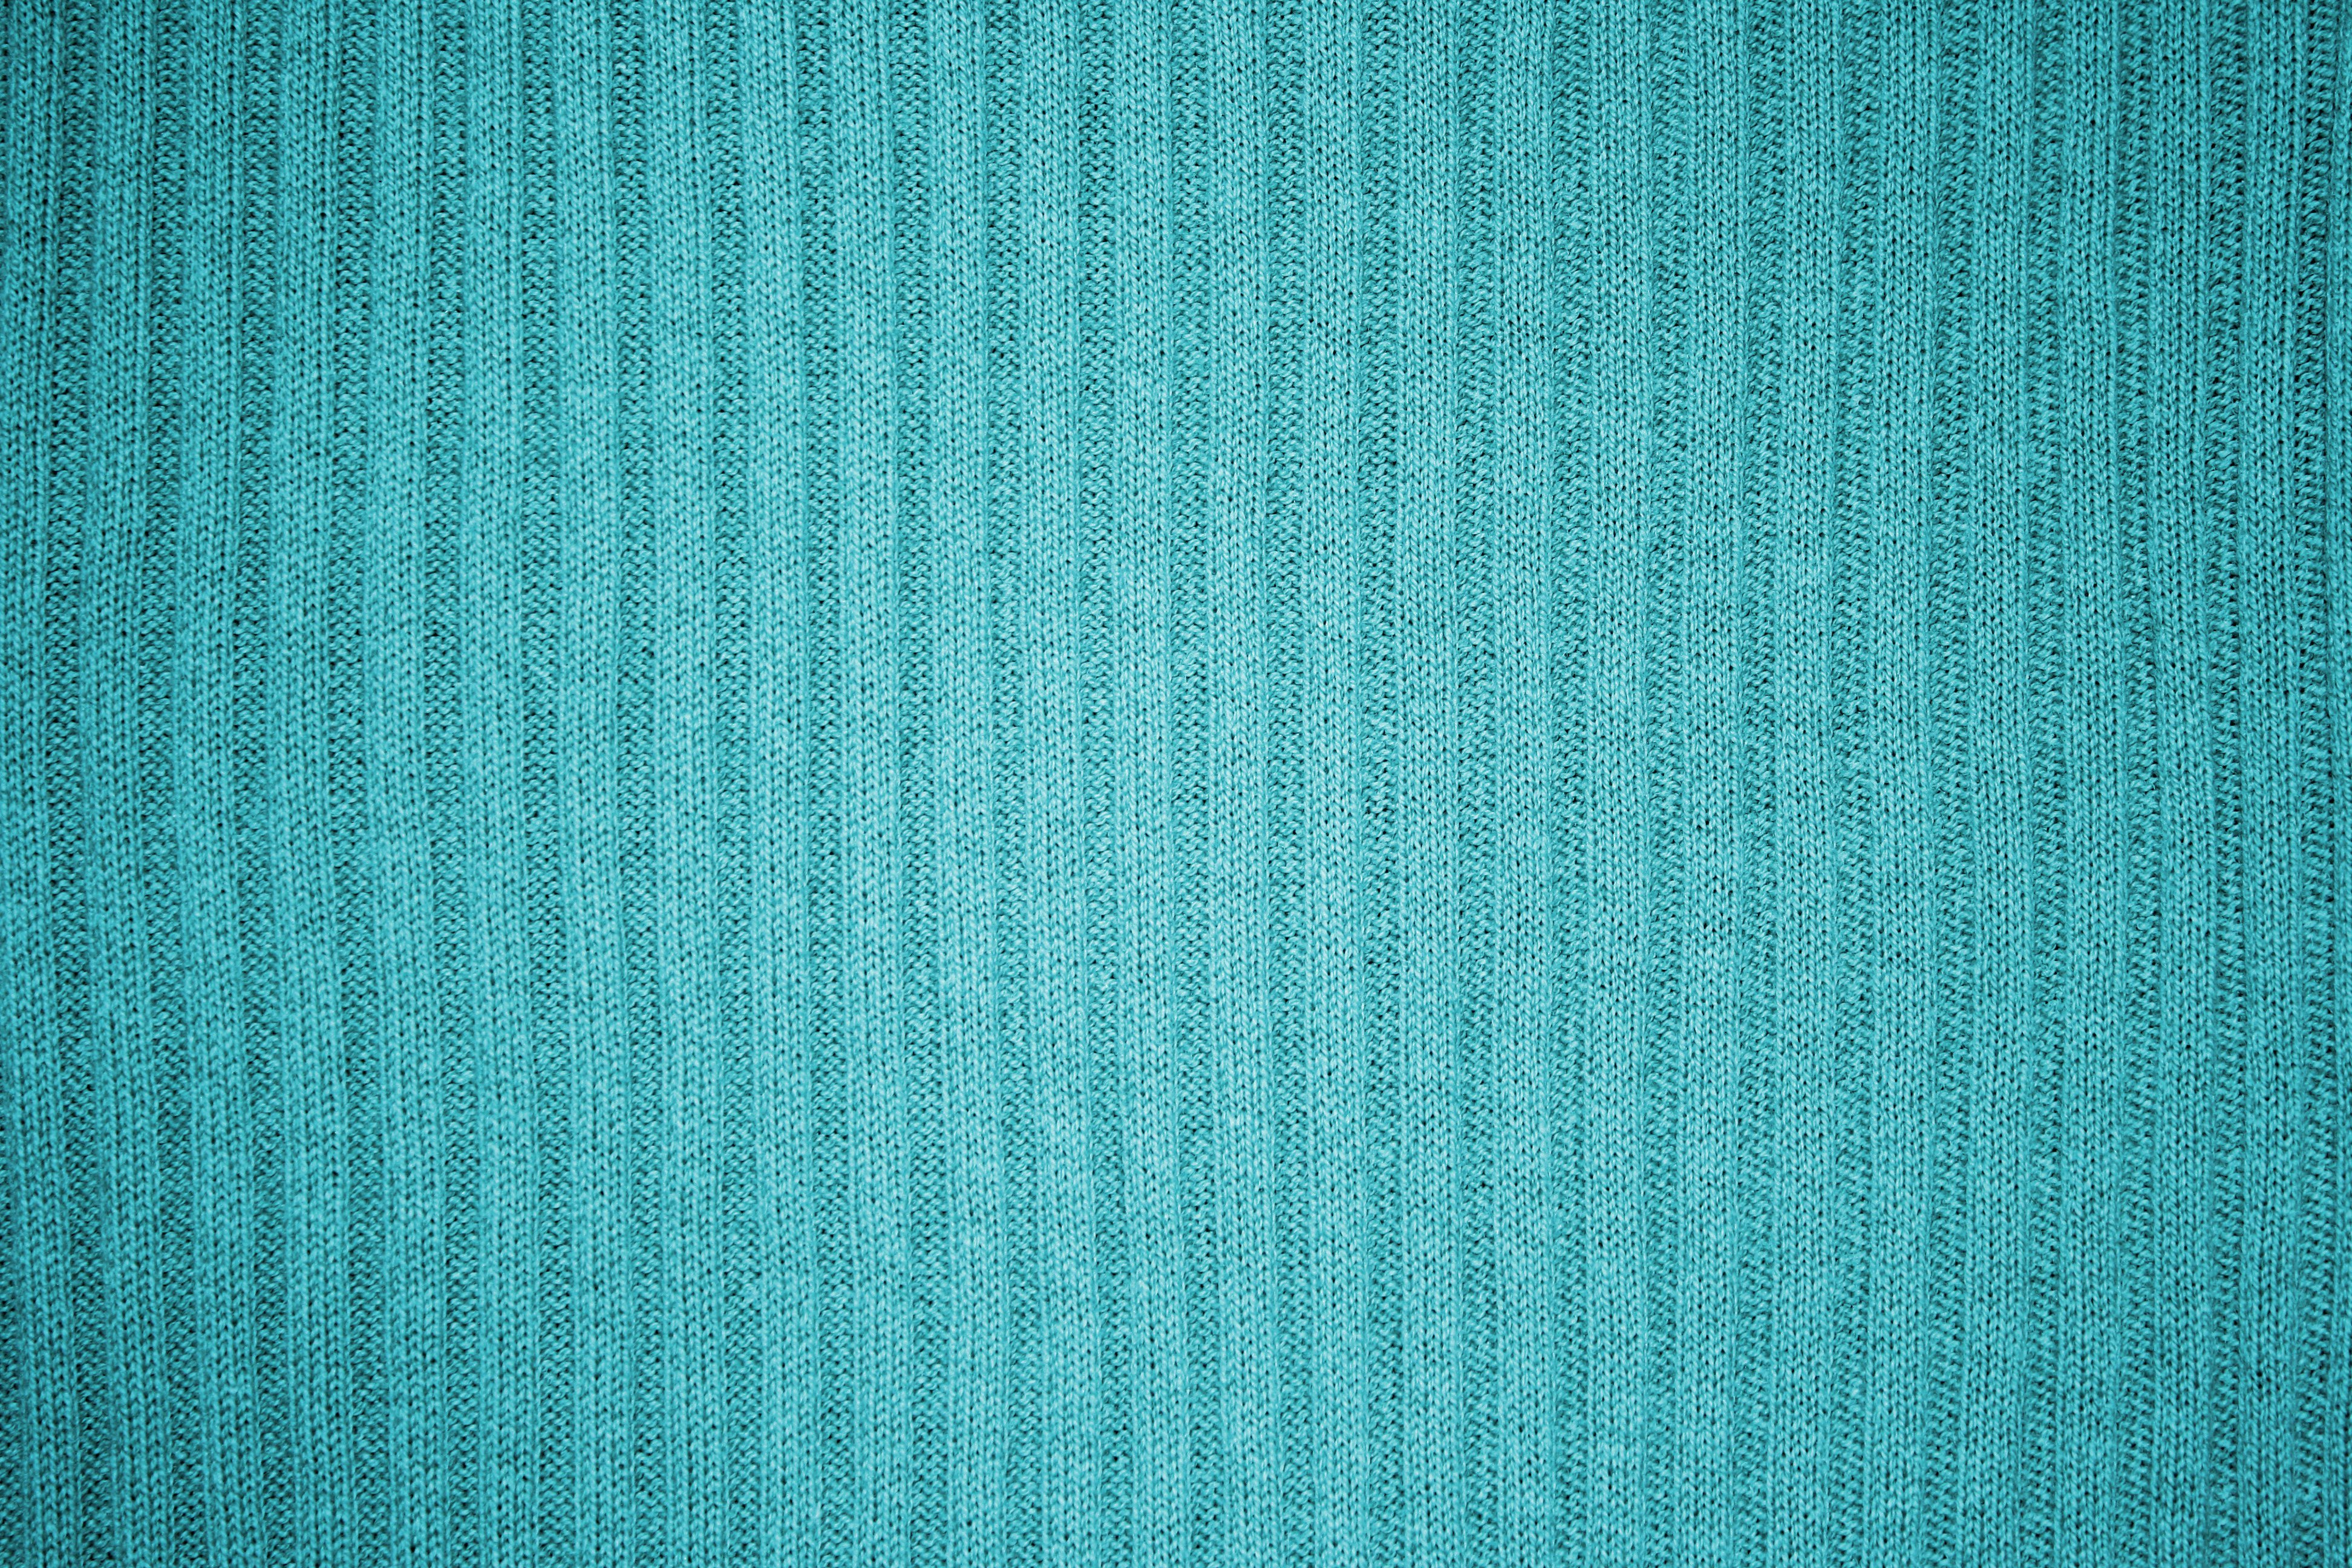 Teal Blue Wallpaper 3888x2592